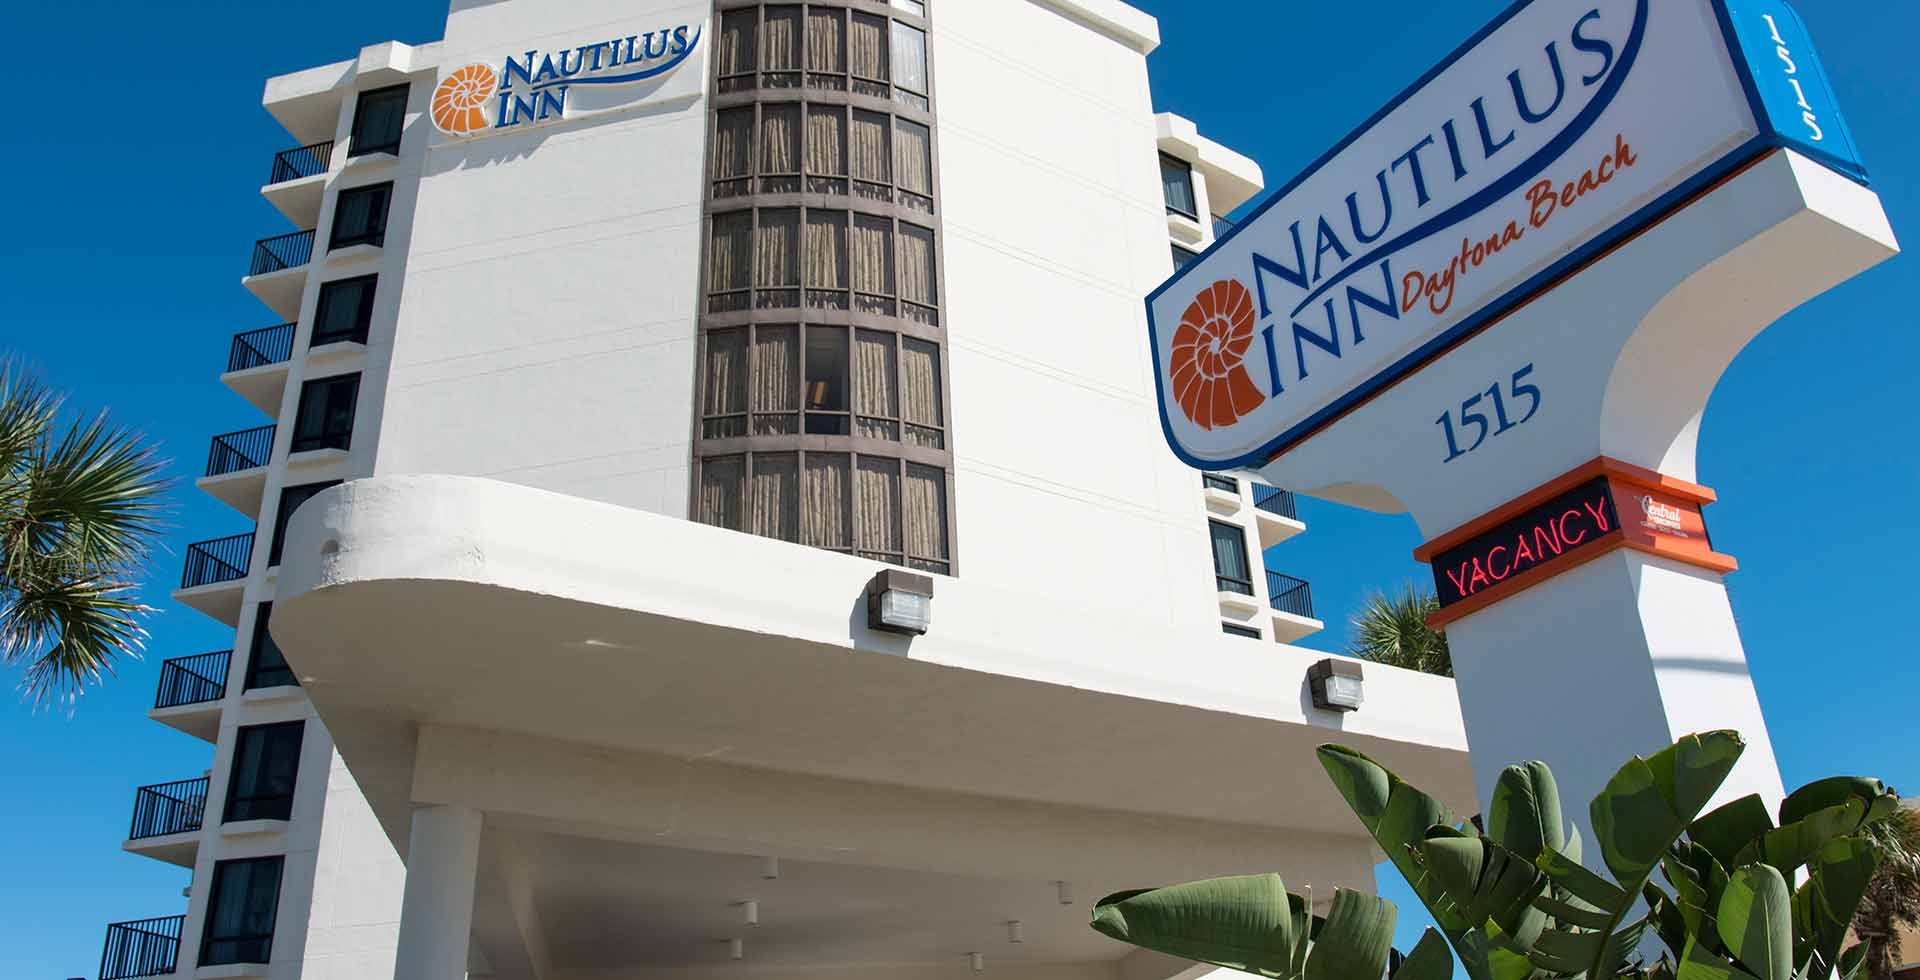 Street view of the Nautilus Inn on Daytona Beach